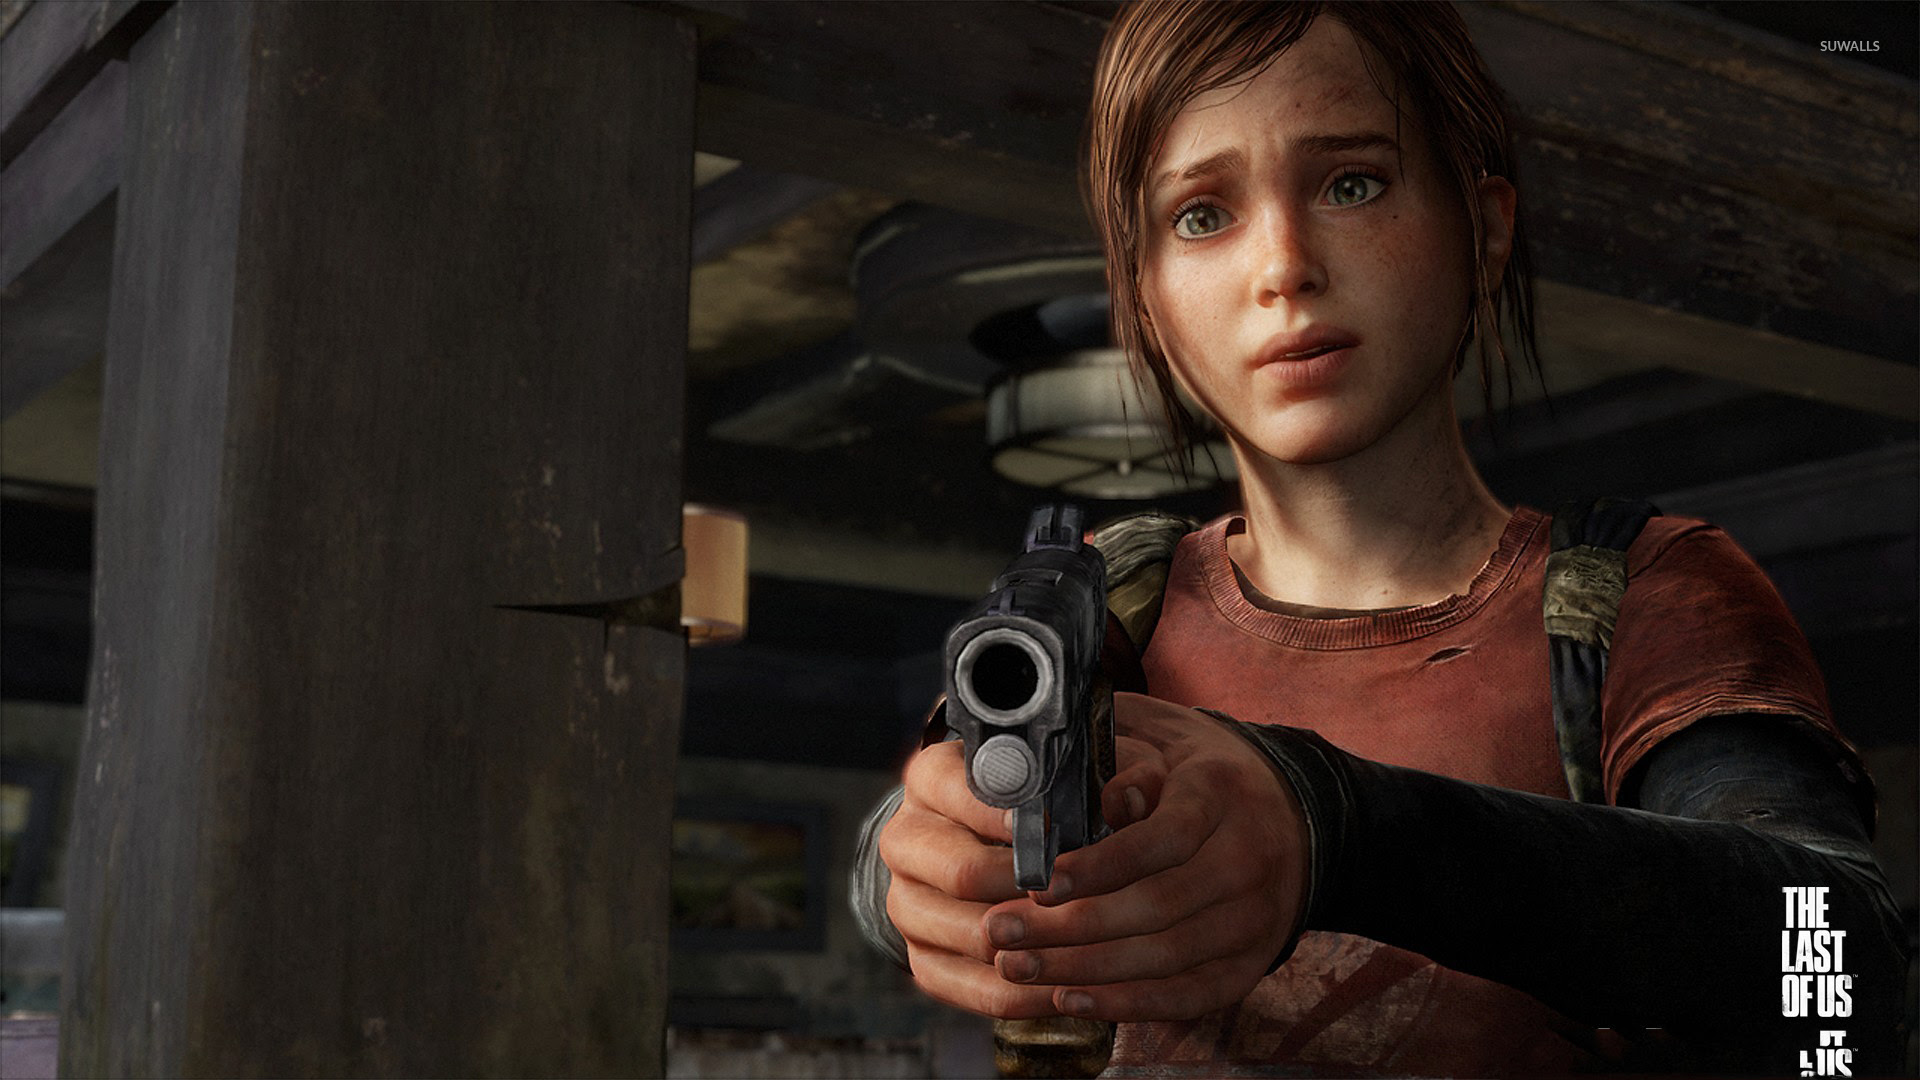 Ellie The Last Of Us Wallpaper 1096885